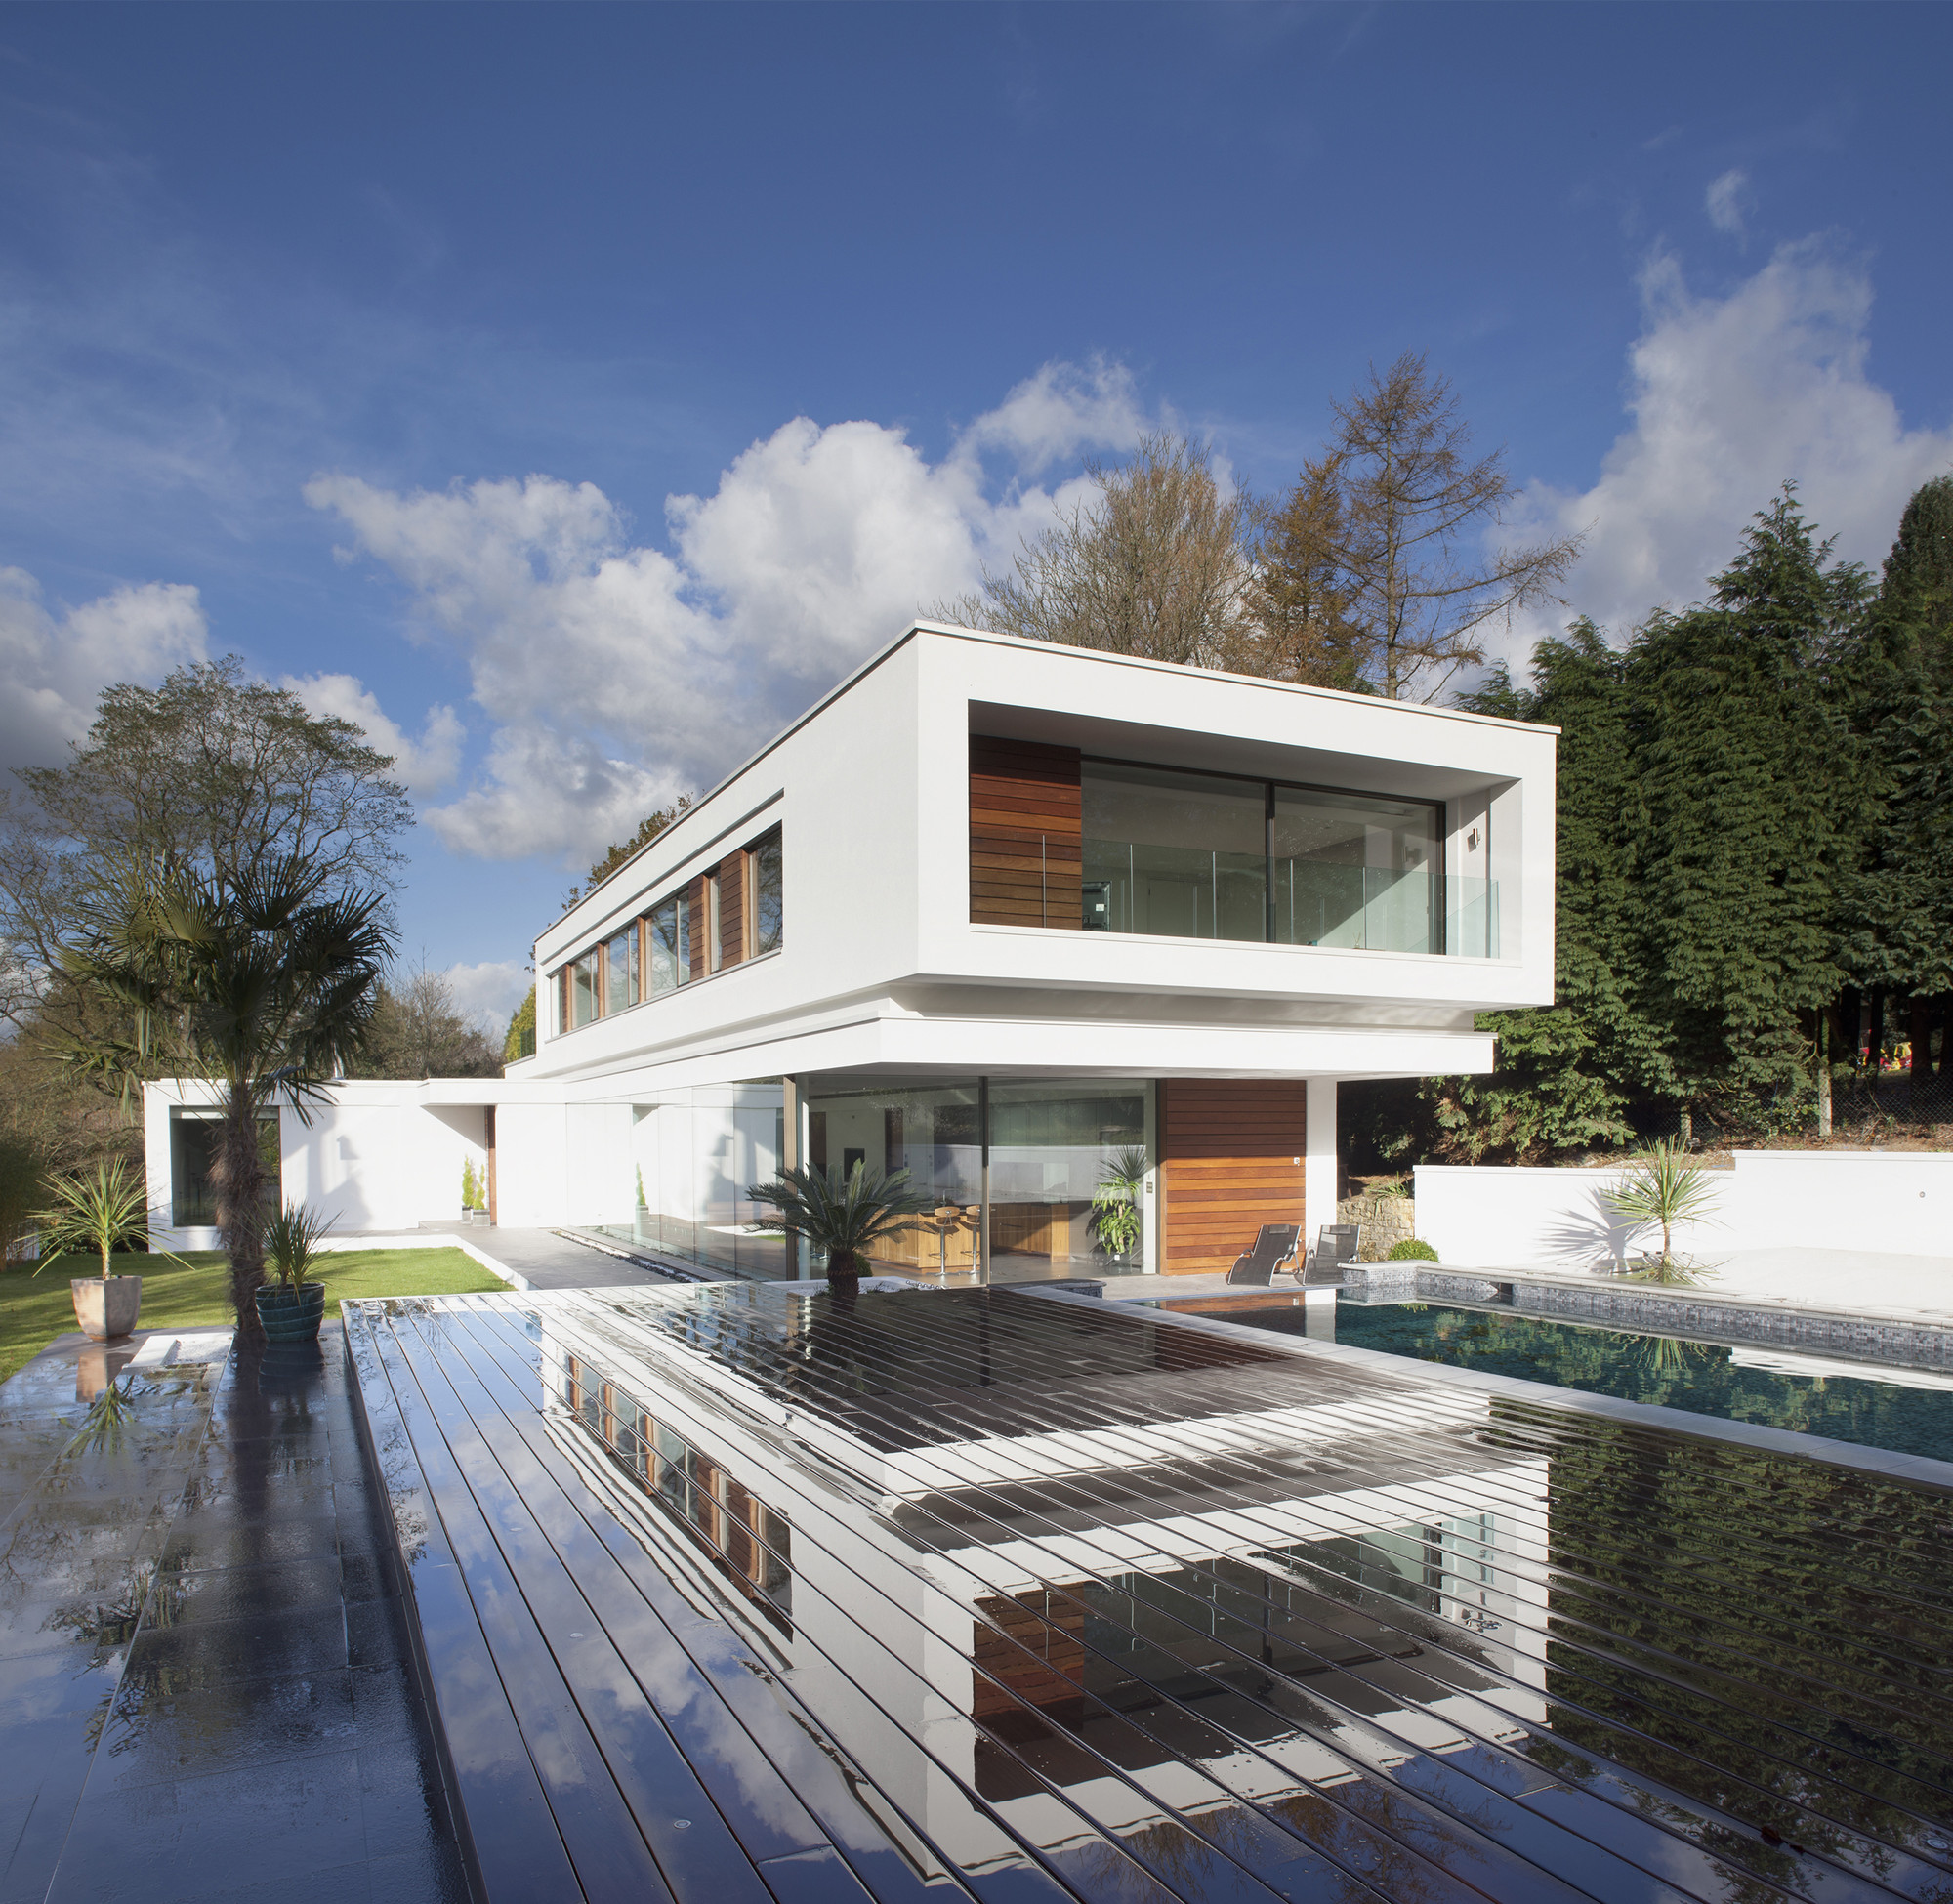 White Lodge / DyerGrimes Architects, Courtesy of DyerGrimes Architects